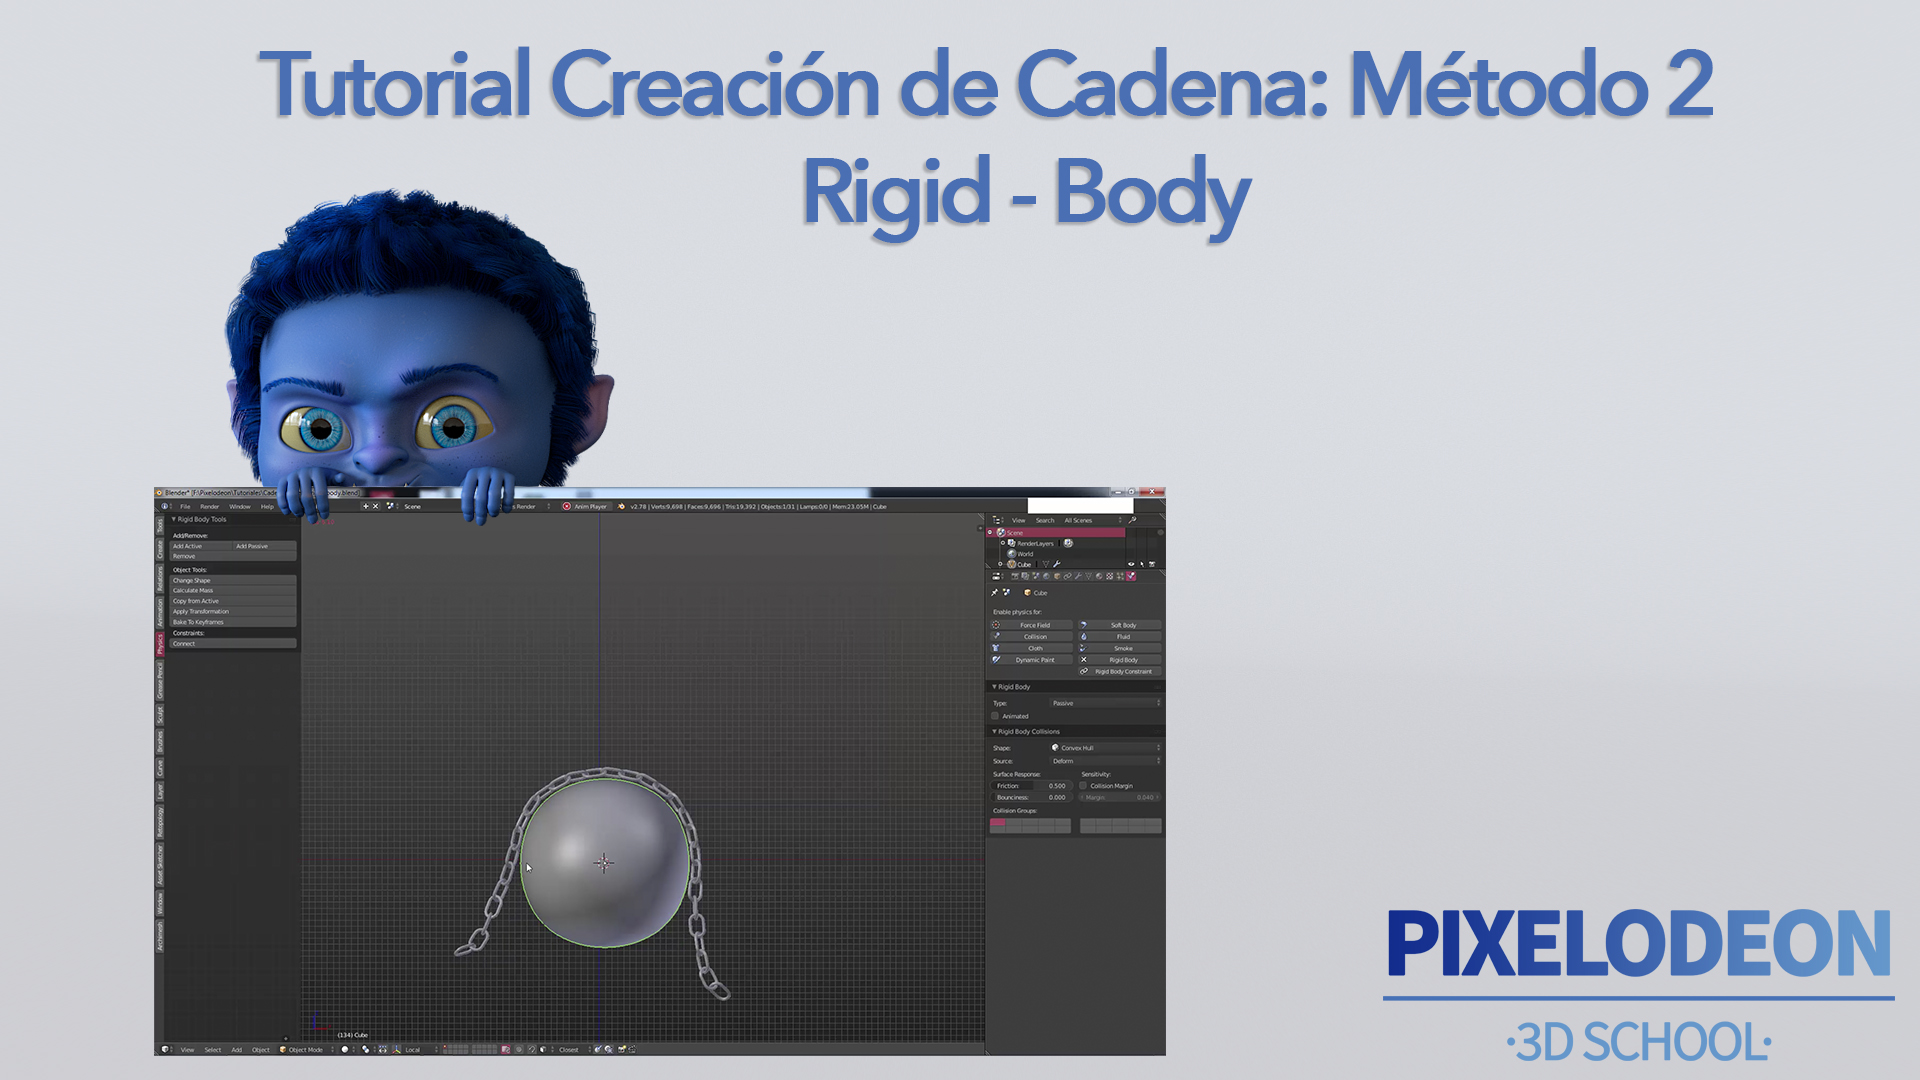 Tutorial de Cadena- Método 2 -Rigid Body- PIXELODEON 3D School